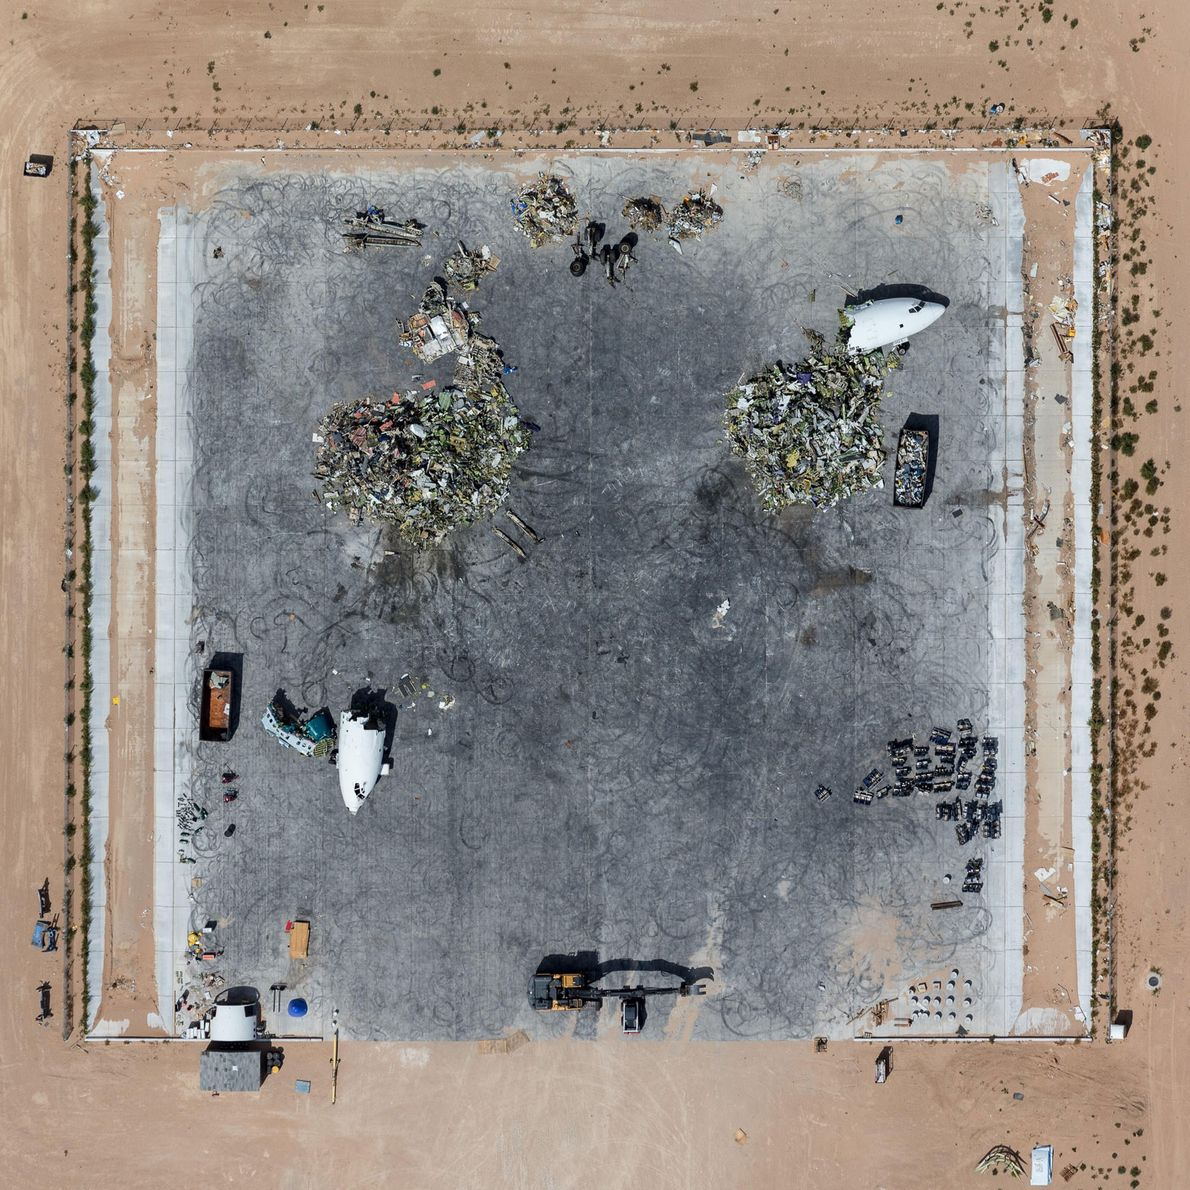 Aircraft are scrapped and shredded by heavy machinery in Victorville, California.